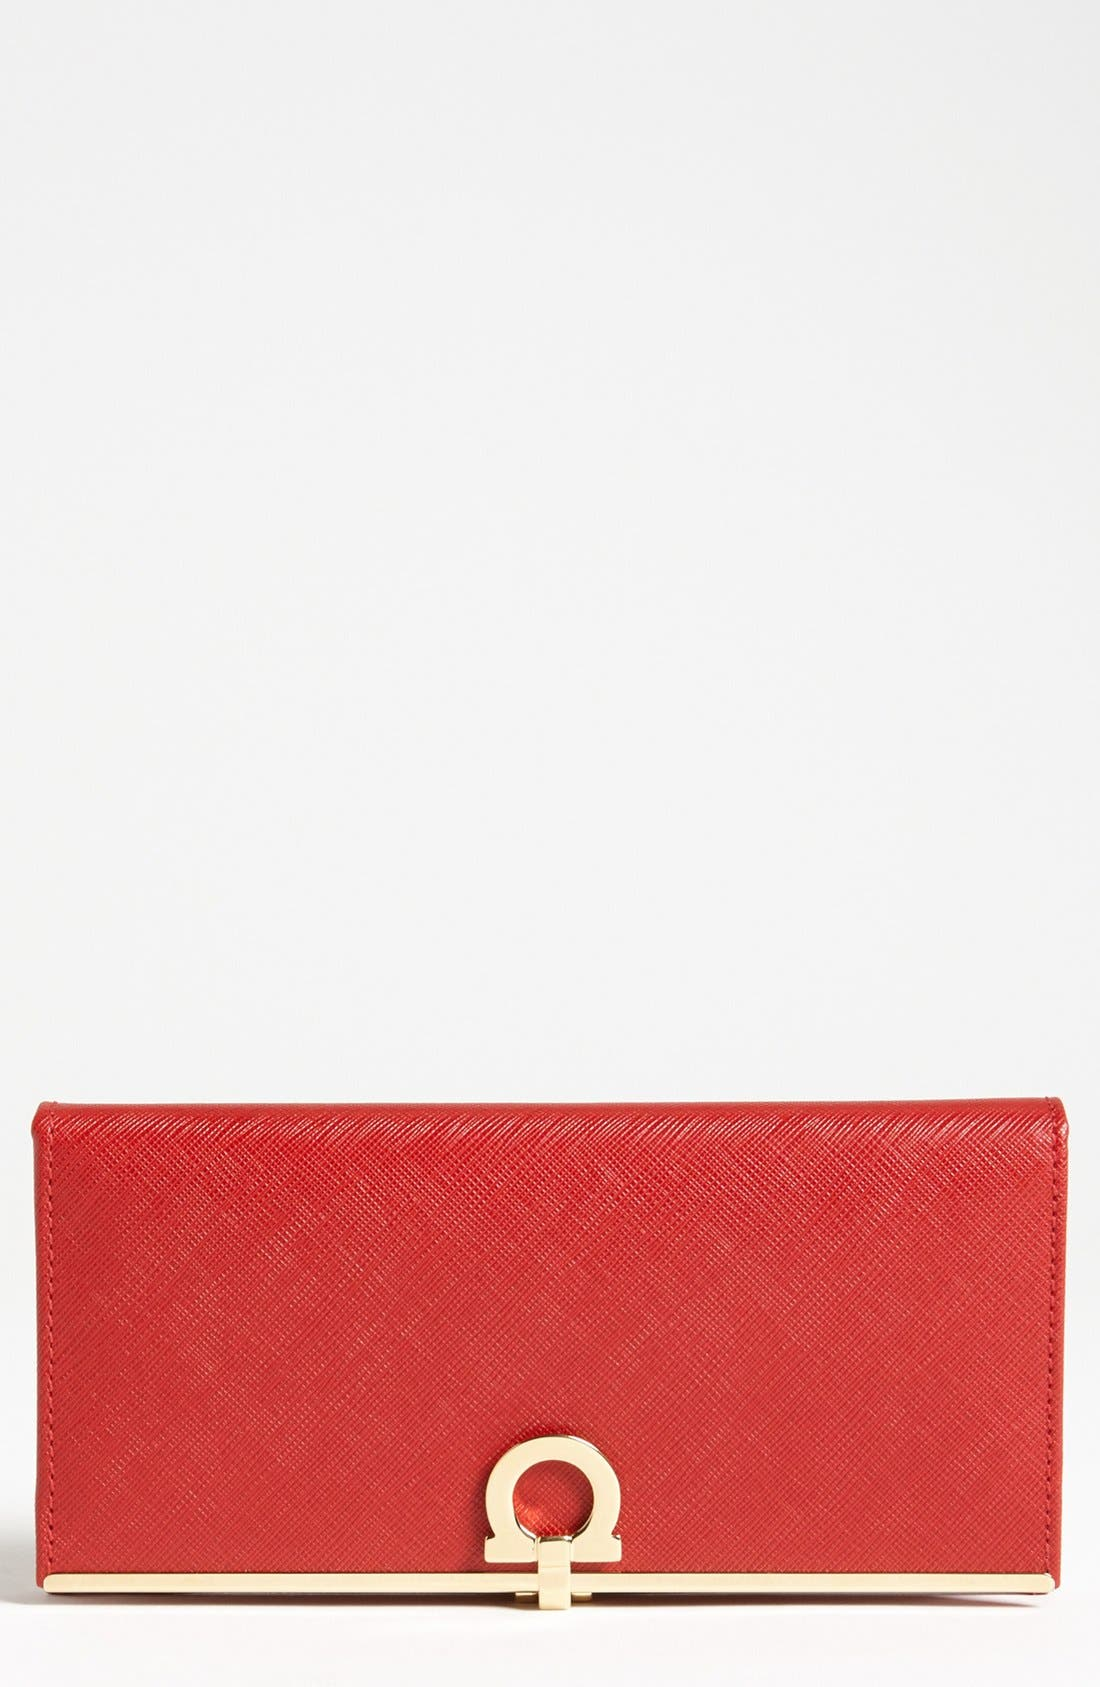 Saffiano Leather Wallet,                         Main,                         color, Rosso Gold Hrdwr